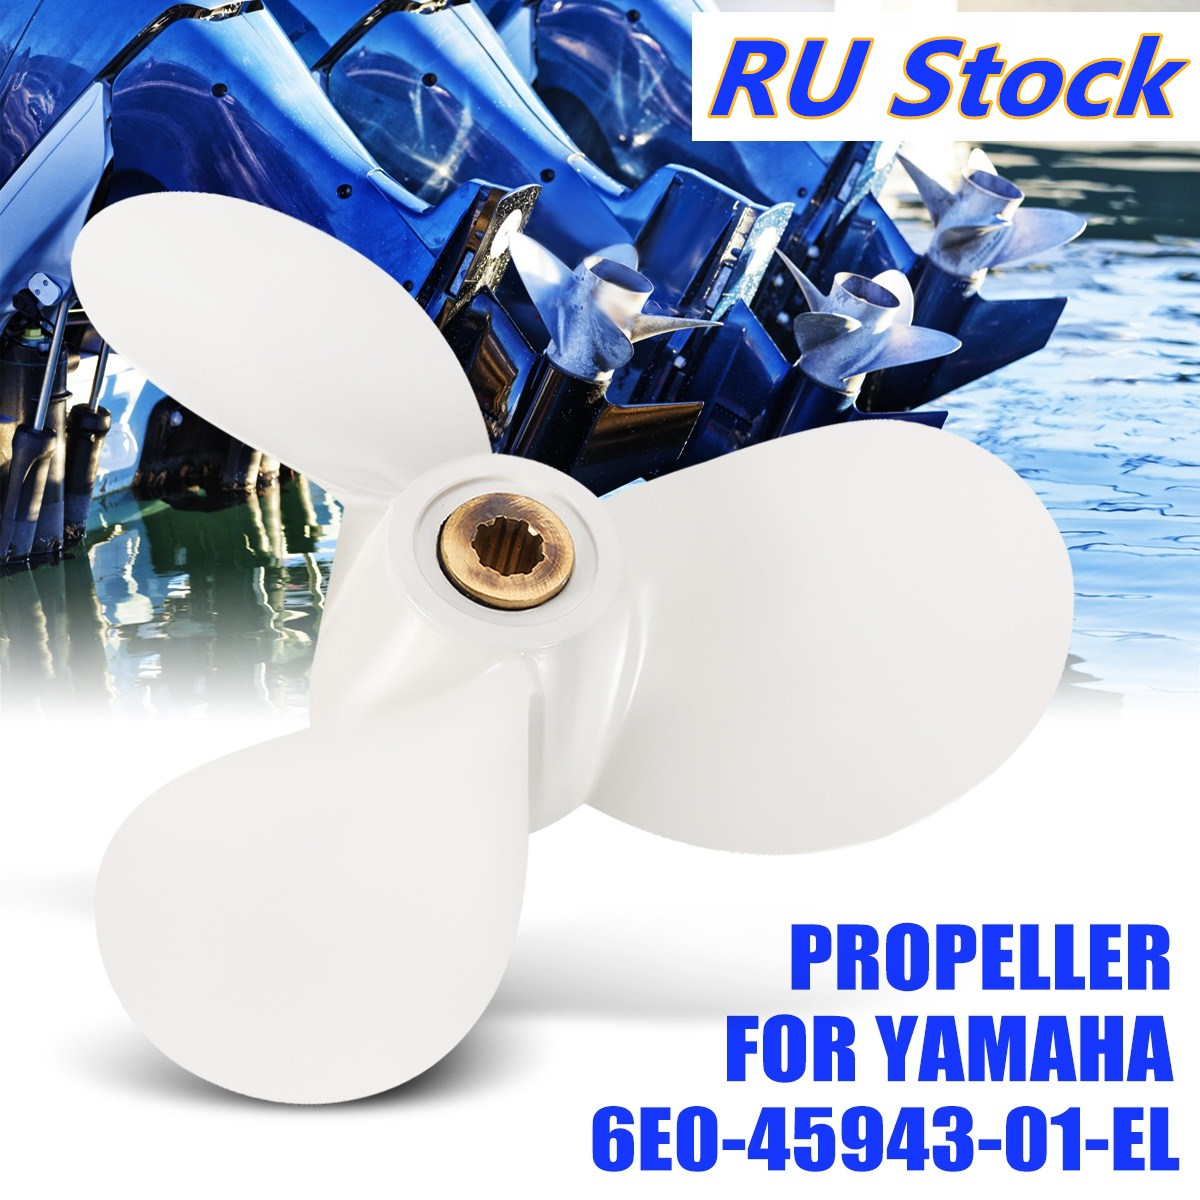 Marine Boat Engine Propeller For Yamaha Outboard Engine Part 71/2X 7-BA #6E0-45943-01-EL